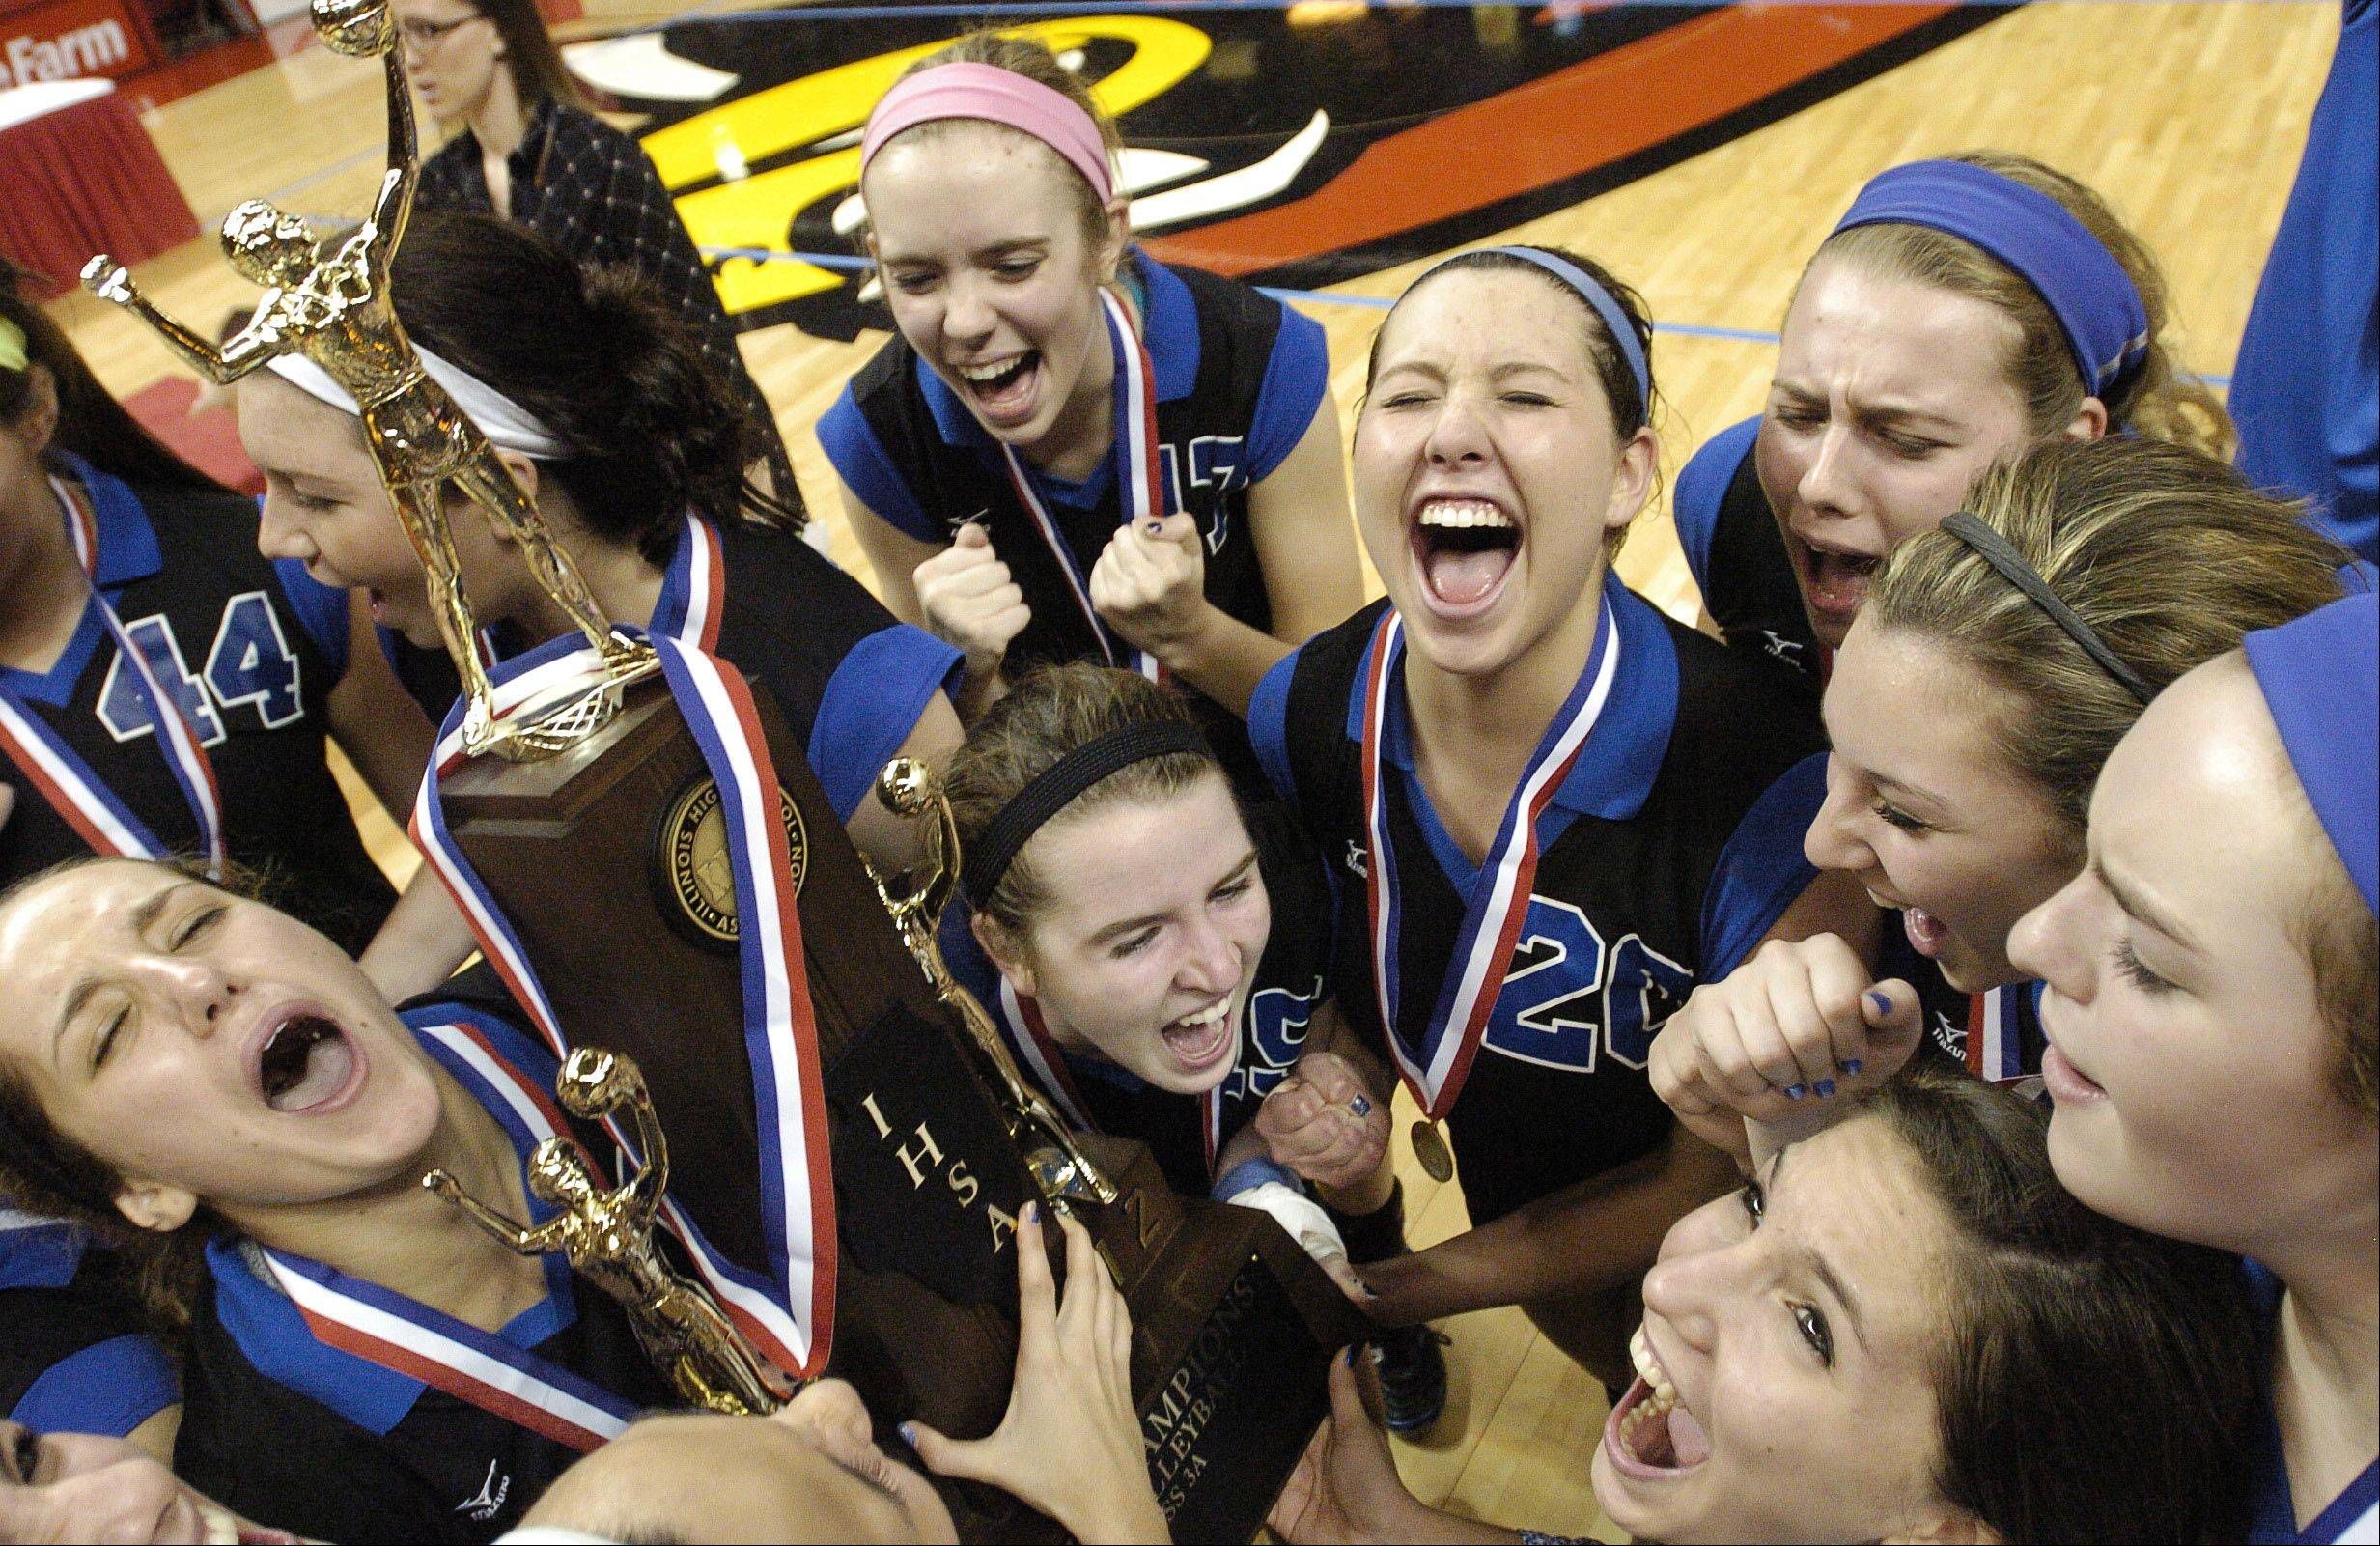 St. Francis celebrates their class 3A girls volleyball championship Saturday at Redbird Arena after defeating Richmond-Burton.